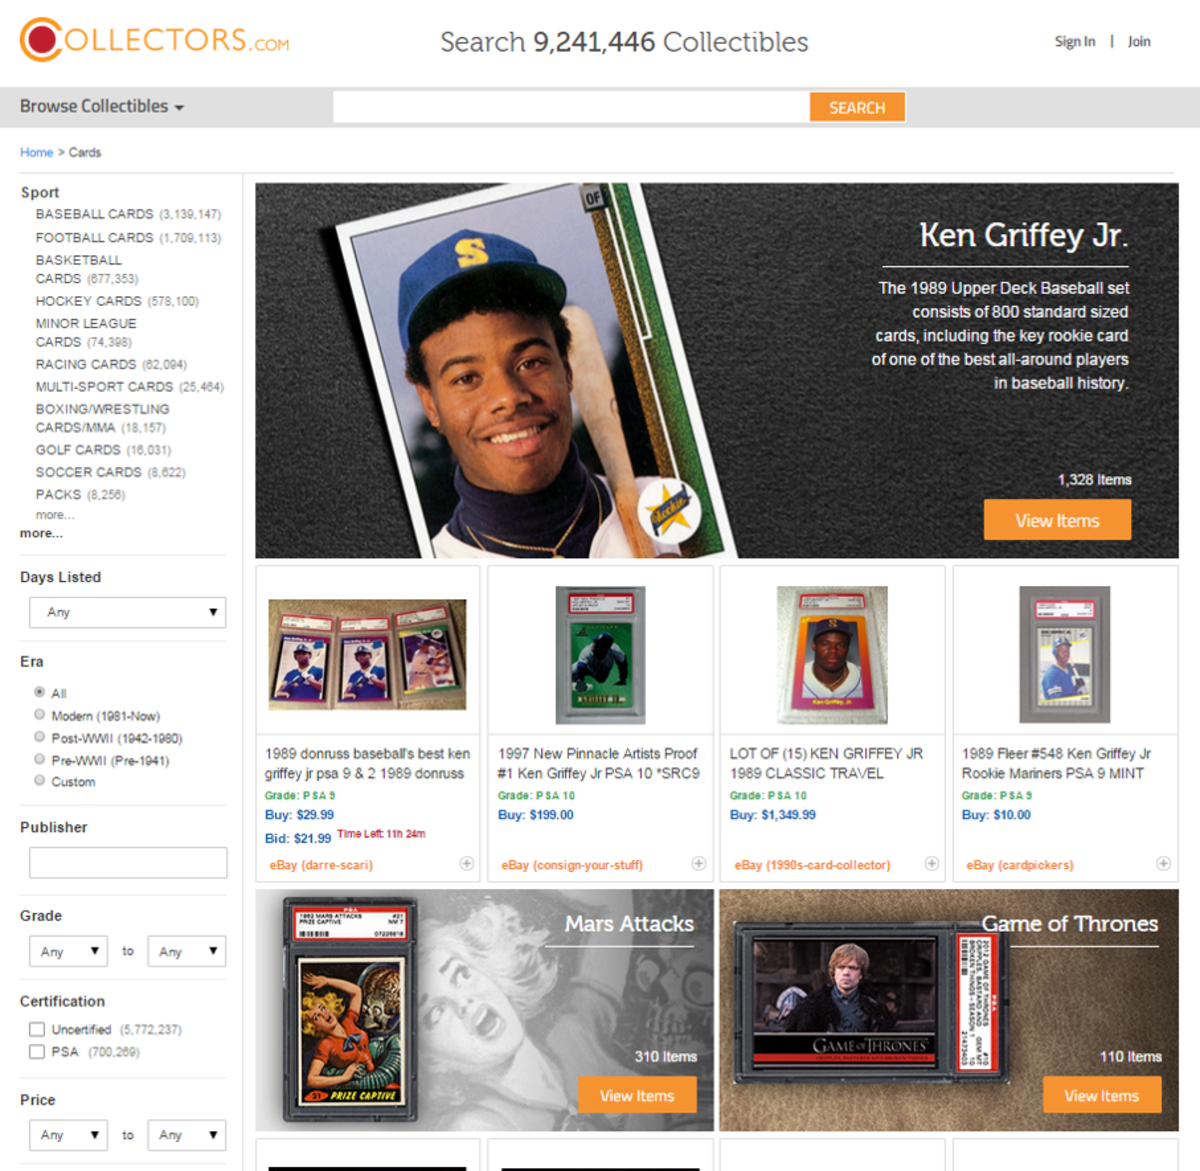 A view of the dedicated trading cards category on Collectors.com, a website where collectors can quickly find over $1 billion of collectibles offered for sale online.